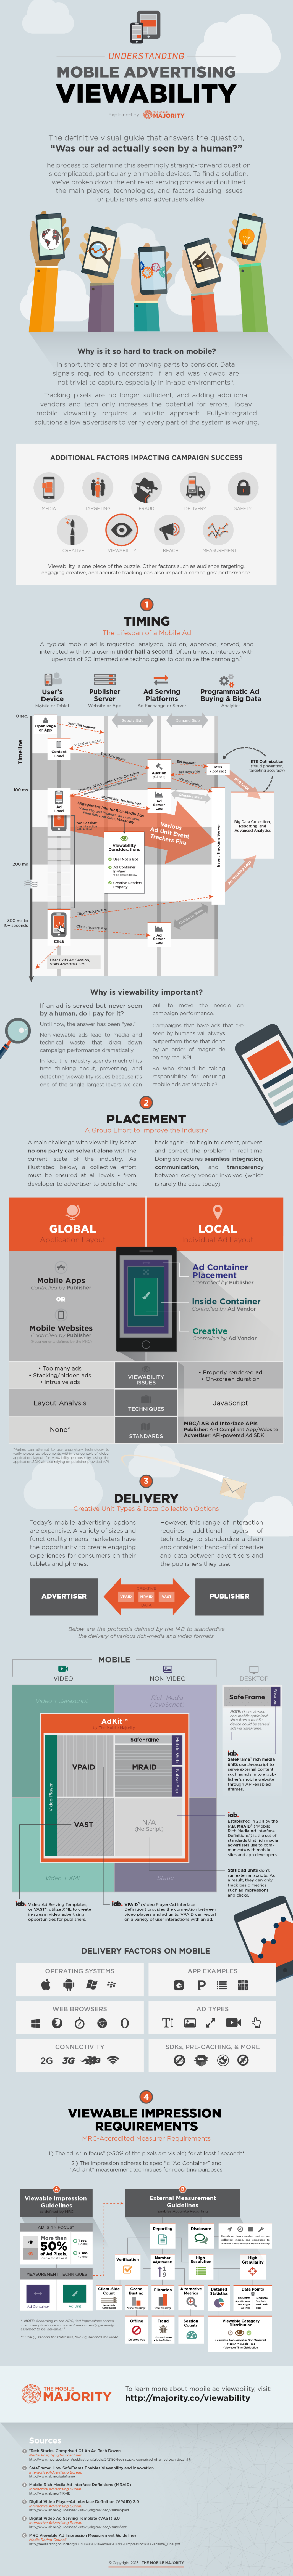 The-Mobile-Majority-Mobile-Viewability-Infographic